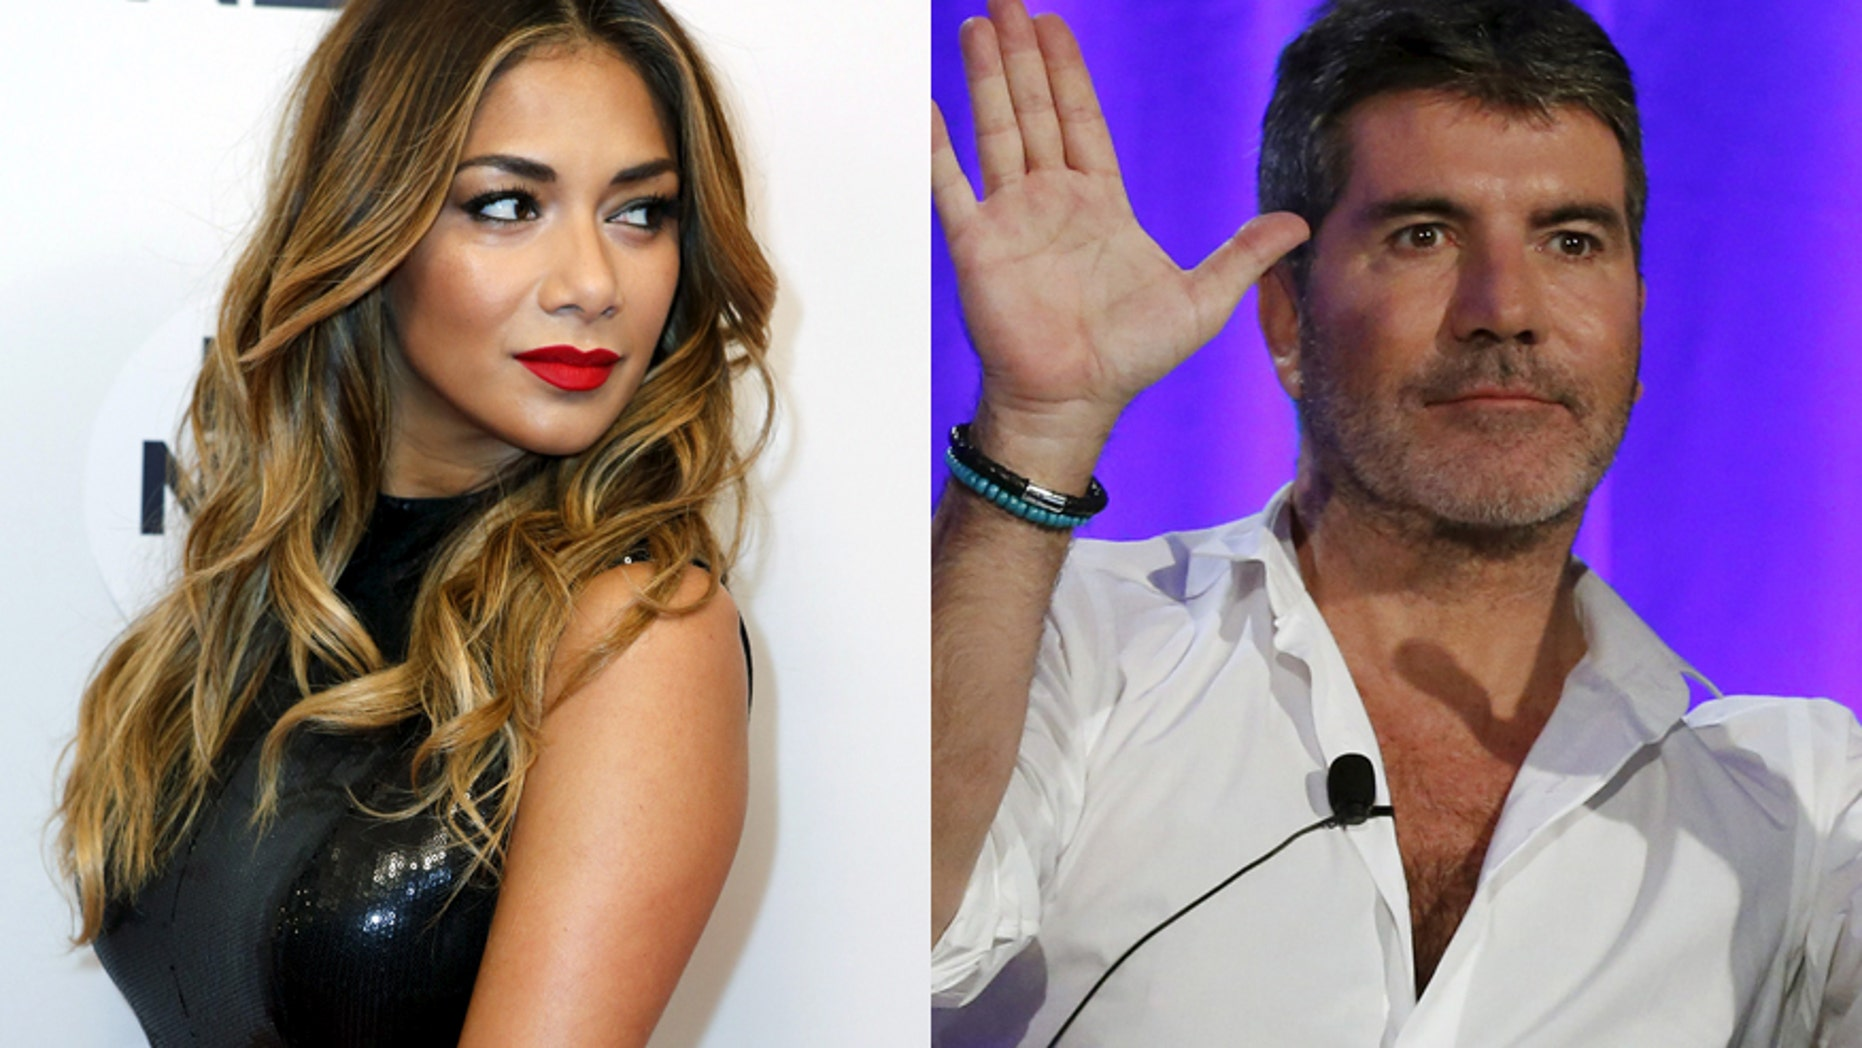 Nicole Scherzinger (left) and Simon Cowell.